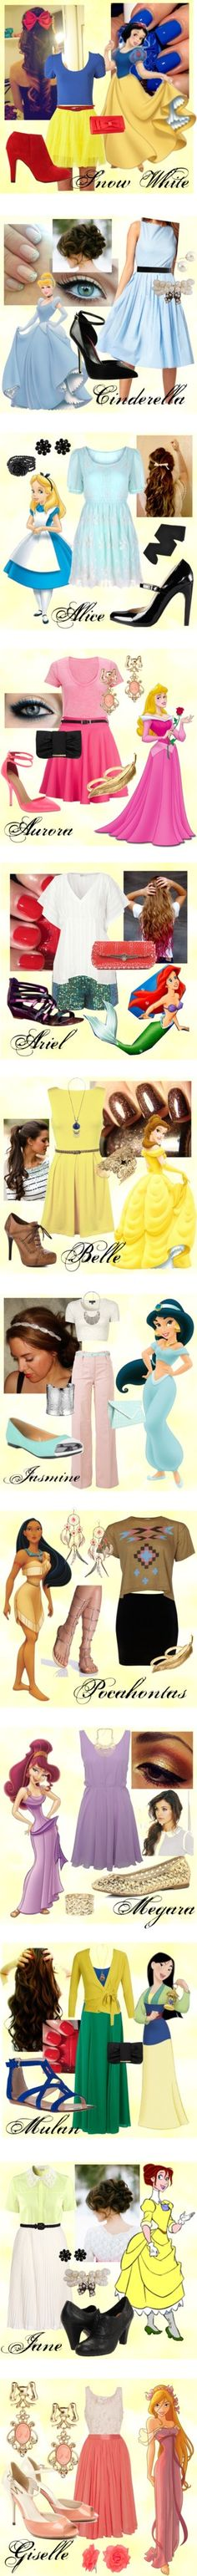 The closest fashion to the real thing that ive found. disneybound